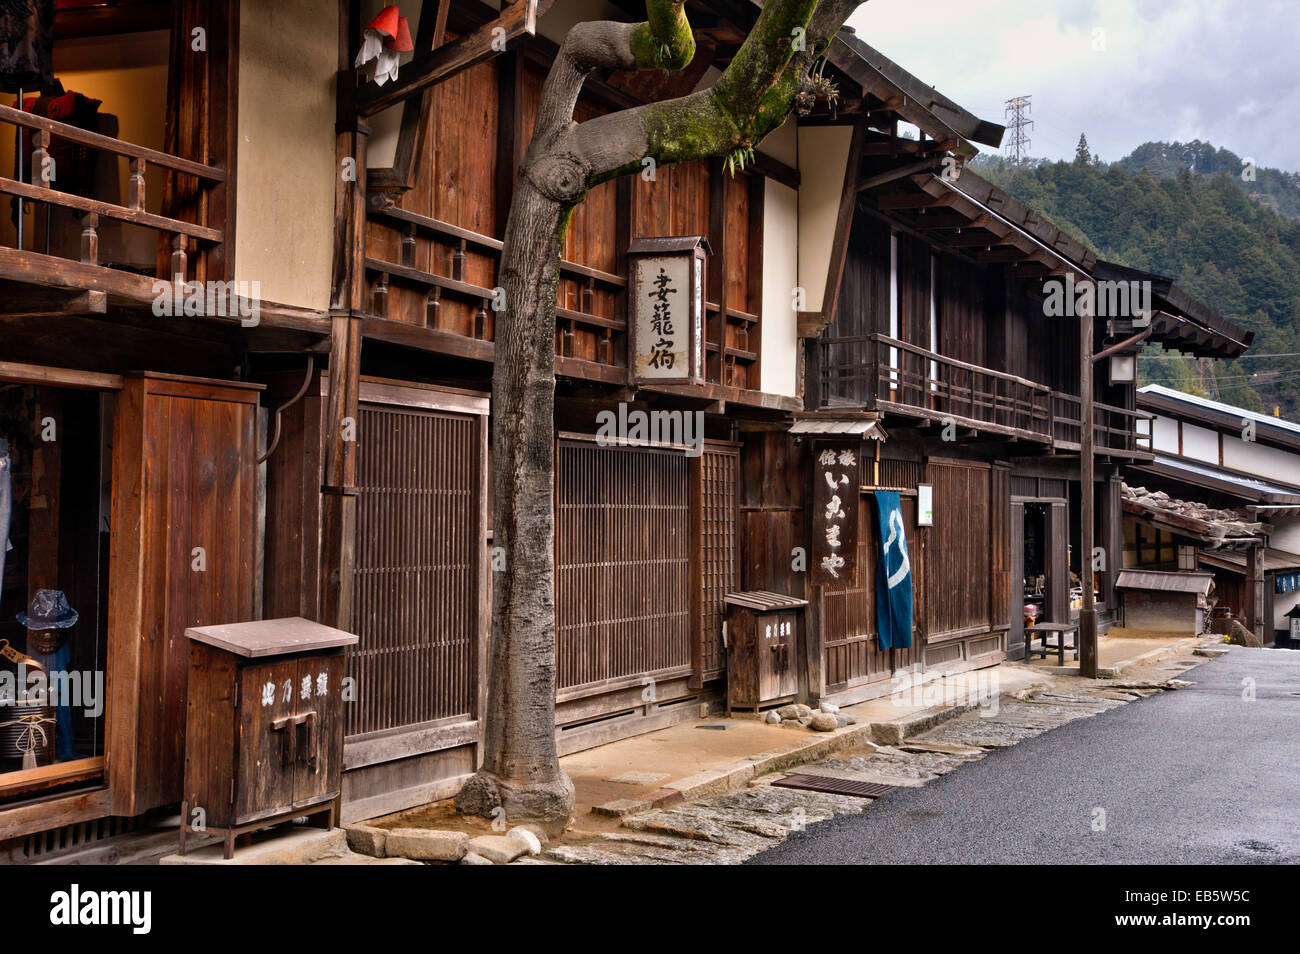 Tsumago, Japan. Street of Terashita, on Nakasendo Highway, ryokan, inns, minshuku and traditional shops in row along - Stock Image